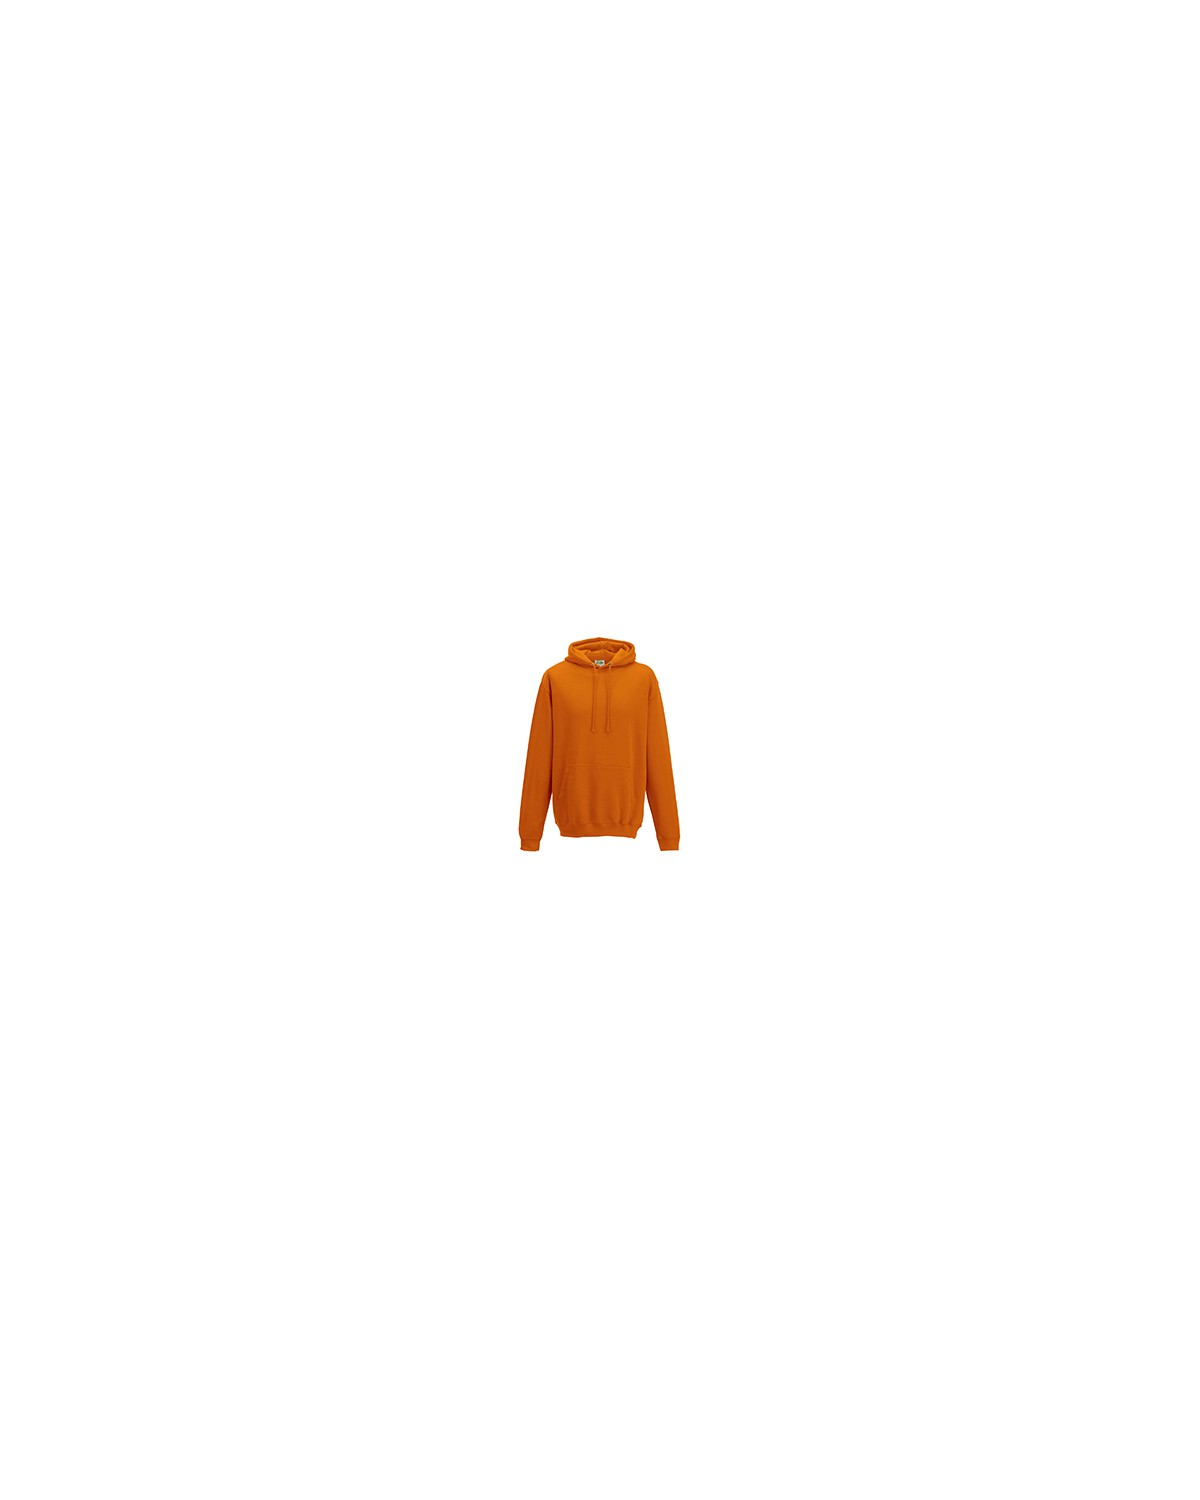 JHA001 Just Hoods By AWDis ORANGE CRUSH